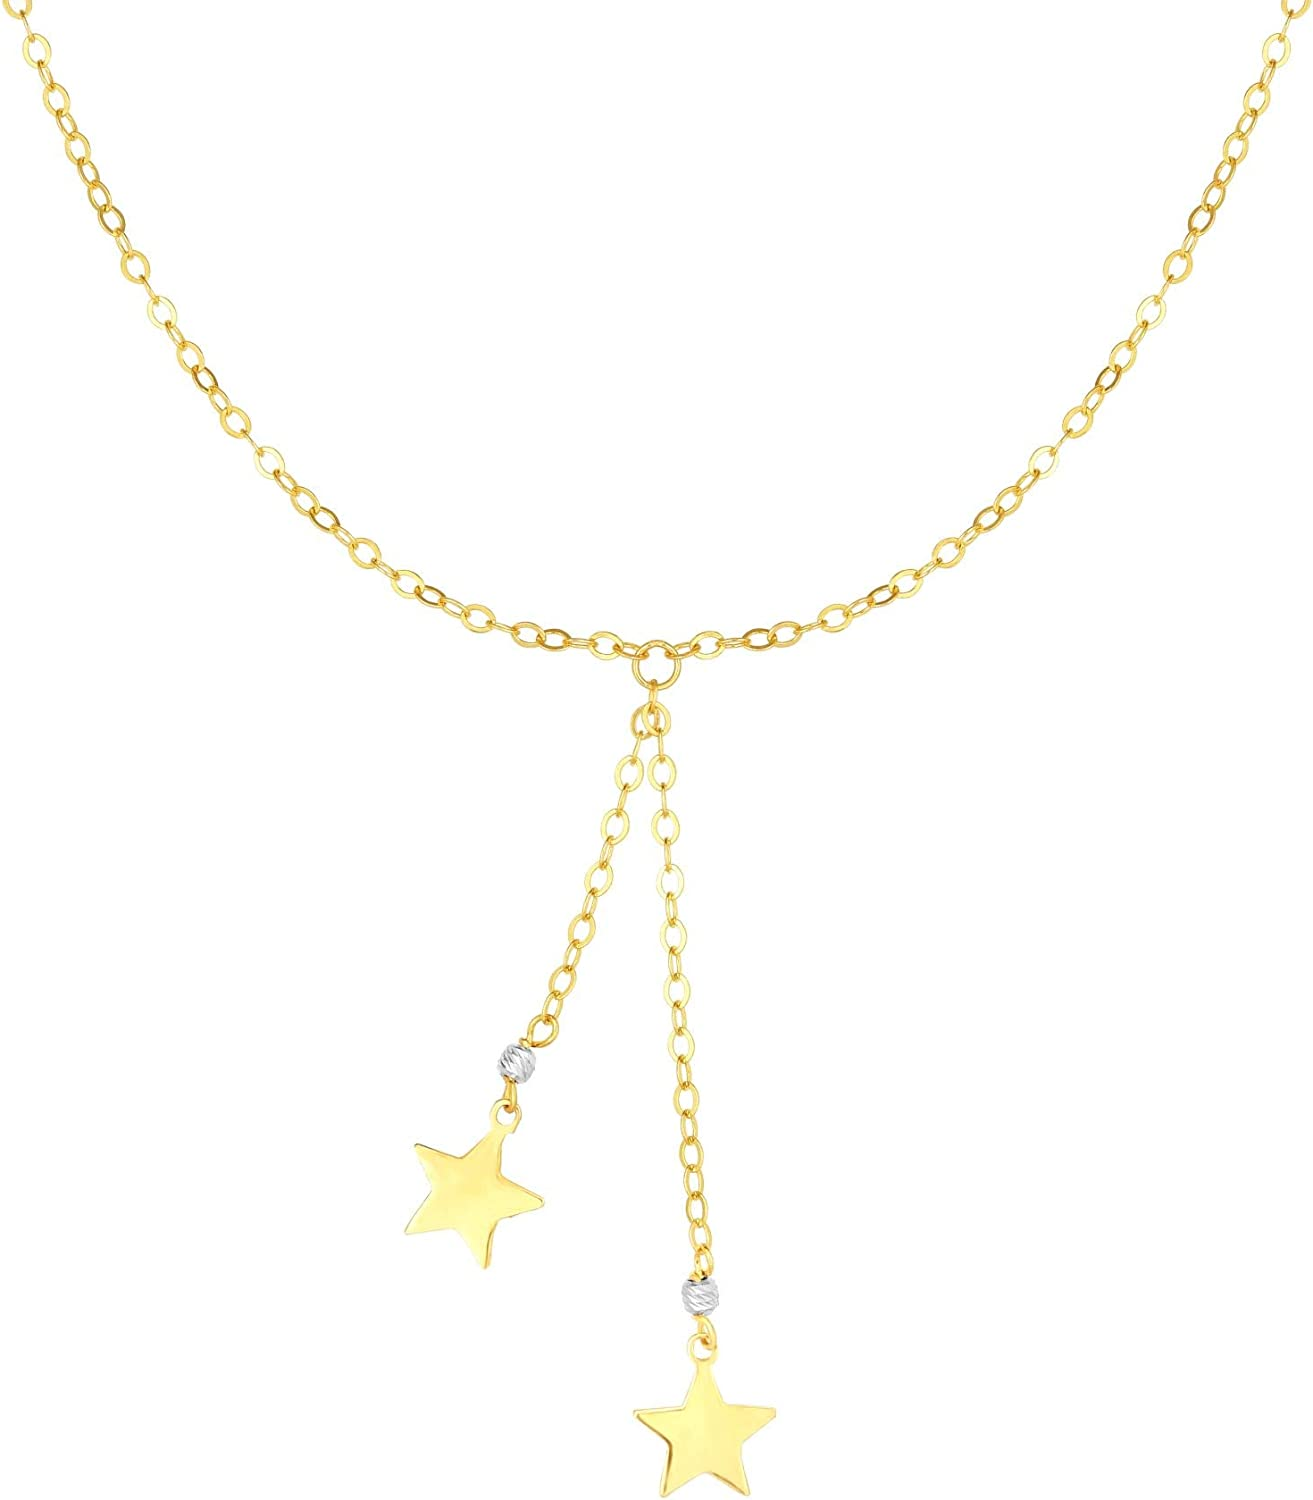 14K Yellow /& White Gold Finish Shiny Fancy Necklace 17 with Lobster Clasp by IcedTime